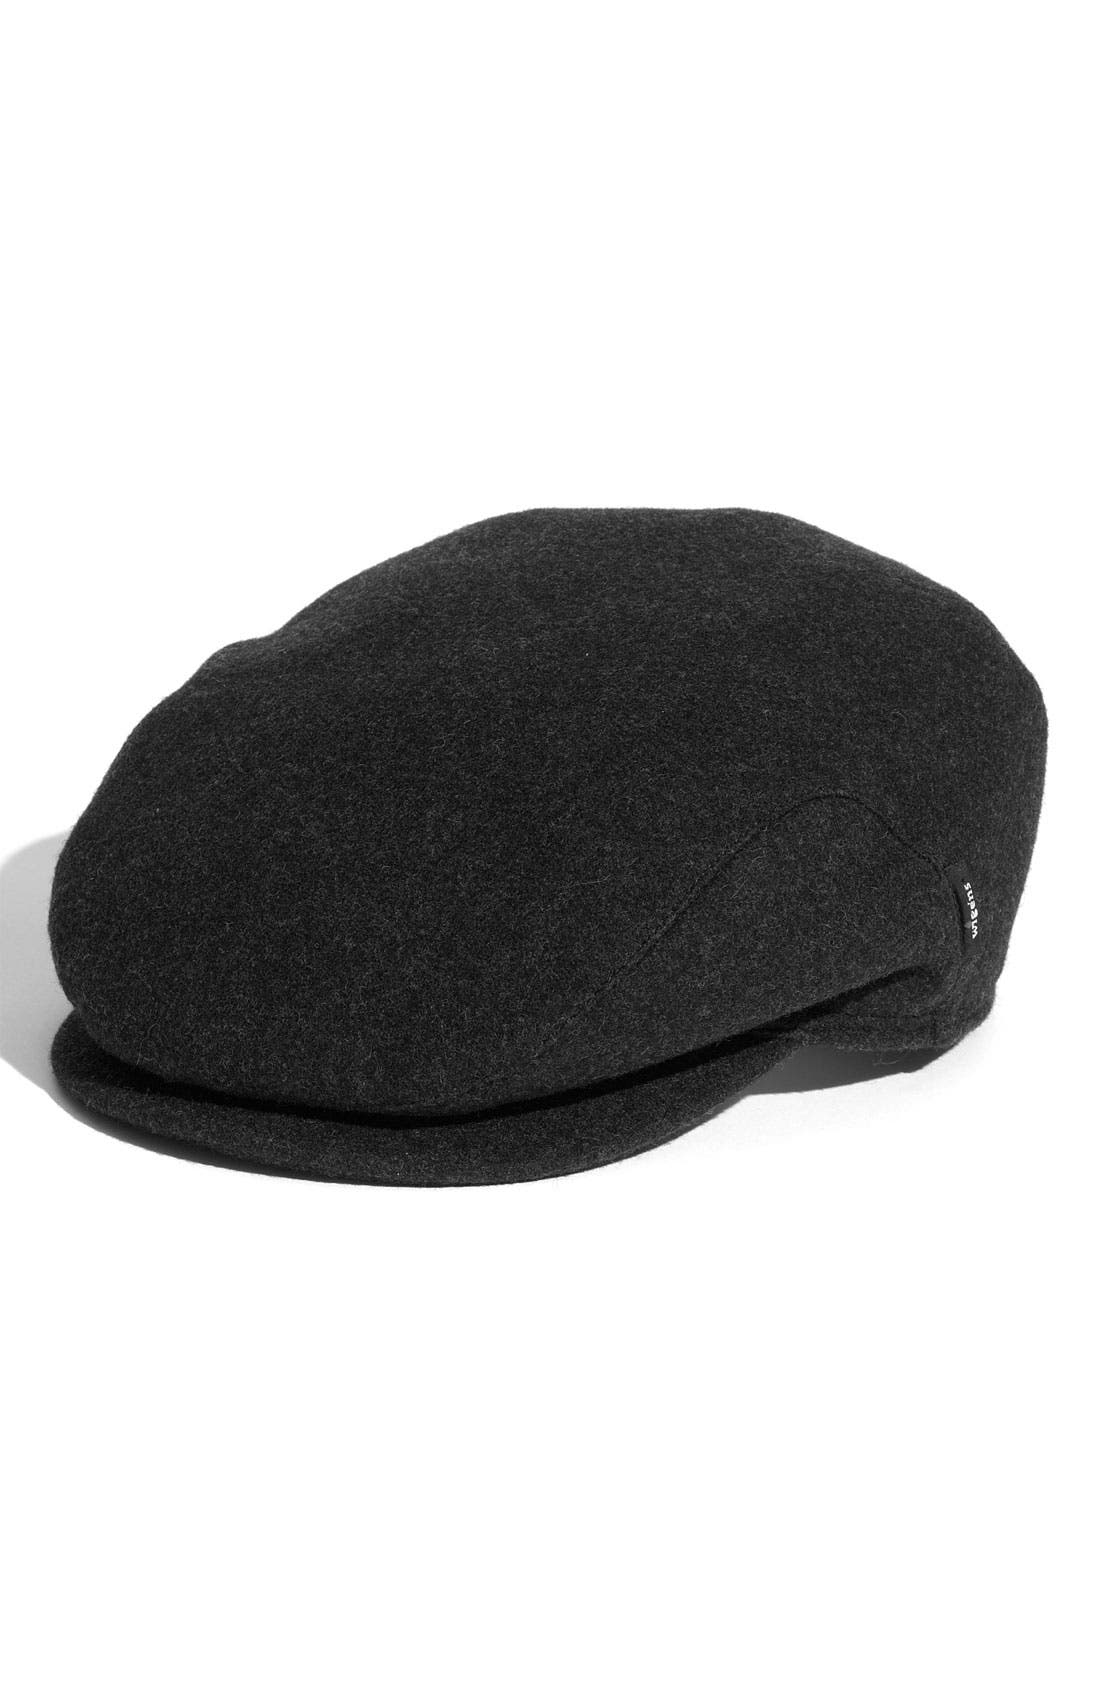 Alternate Image 1 Selected - Wigens Earflap Wool Driving Cap